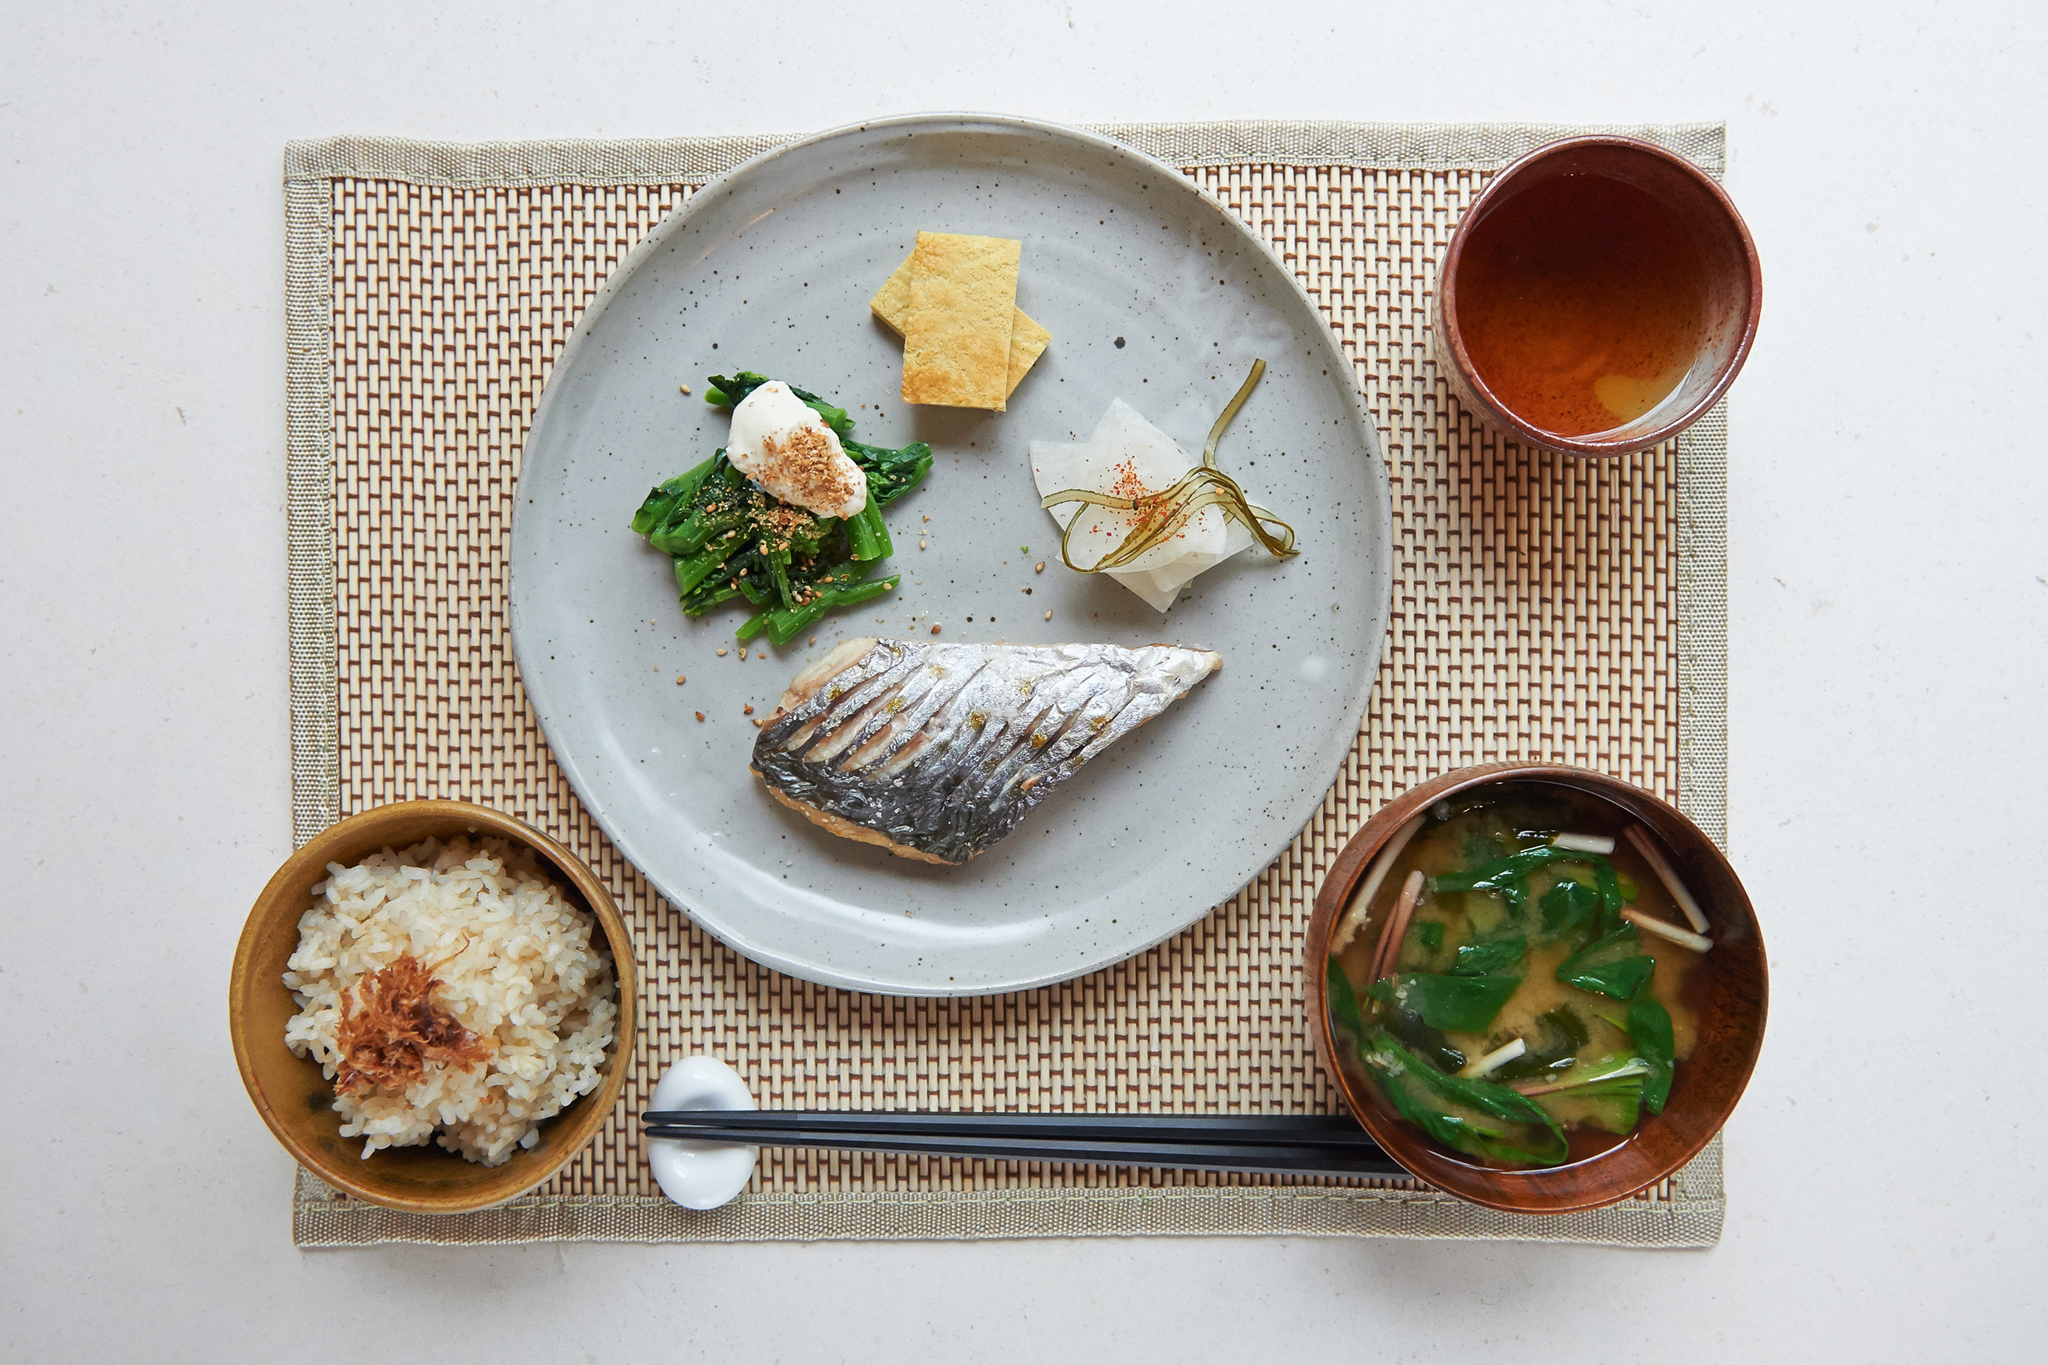 'Japanese Asagohan (Breakfast)